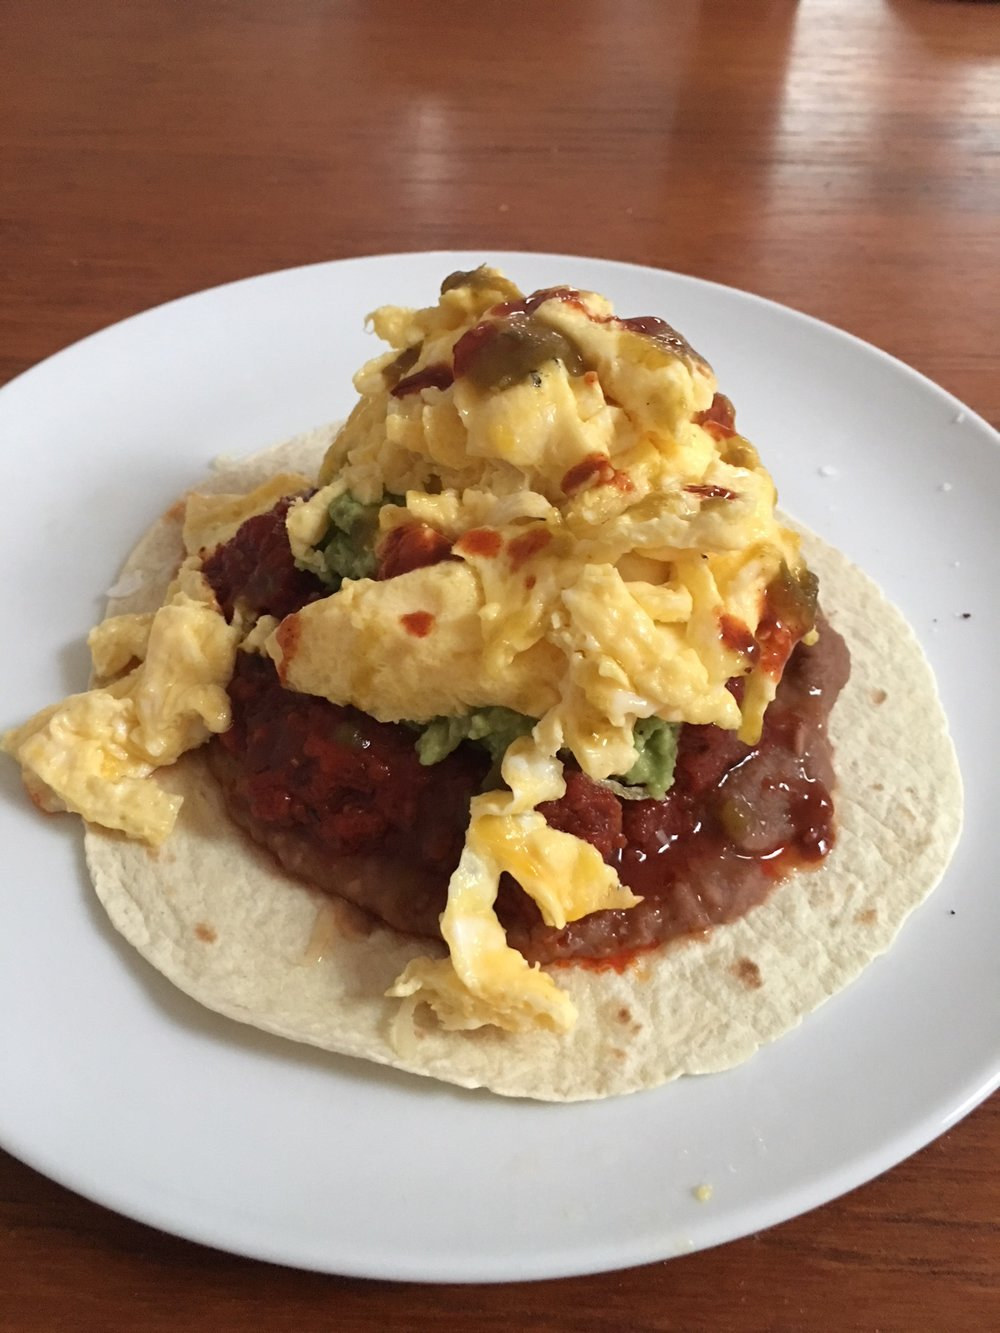 huevos rancheros, but pregnancy friendly - no runny eggs for me for another 6 months :(